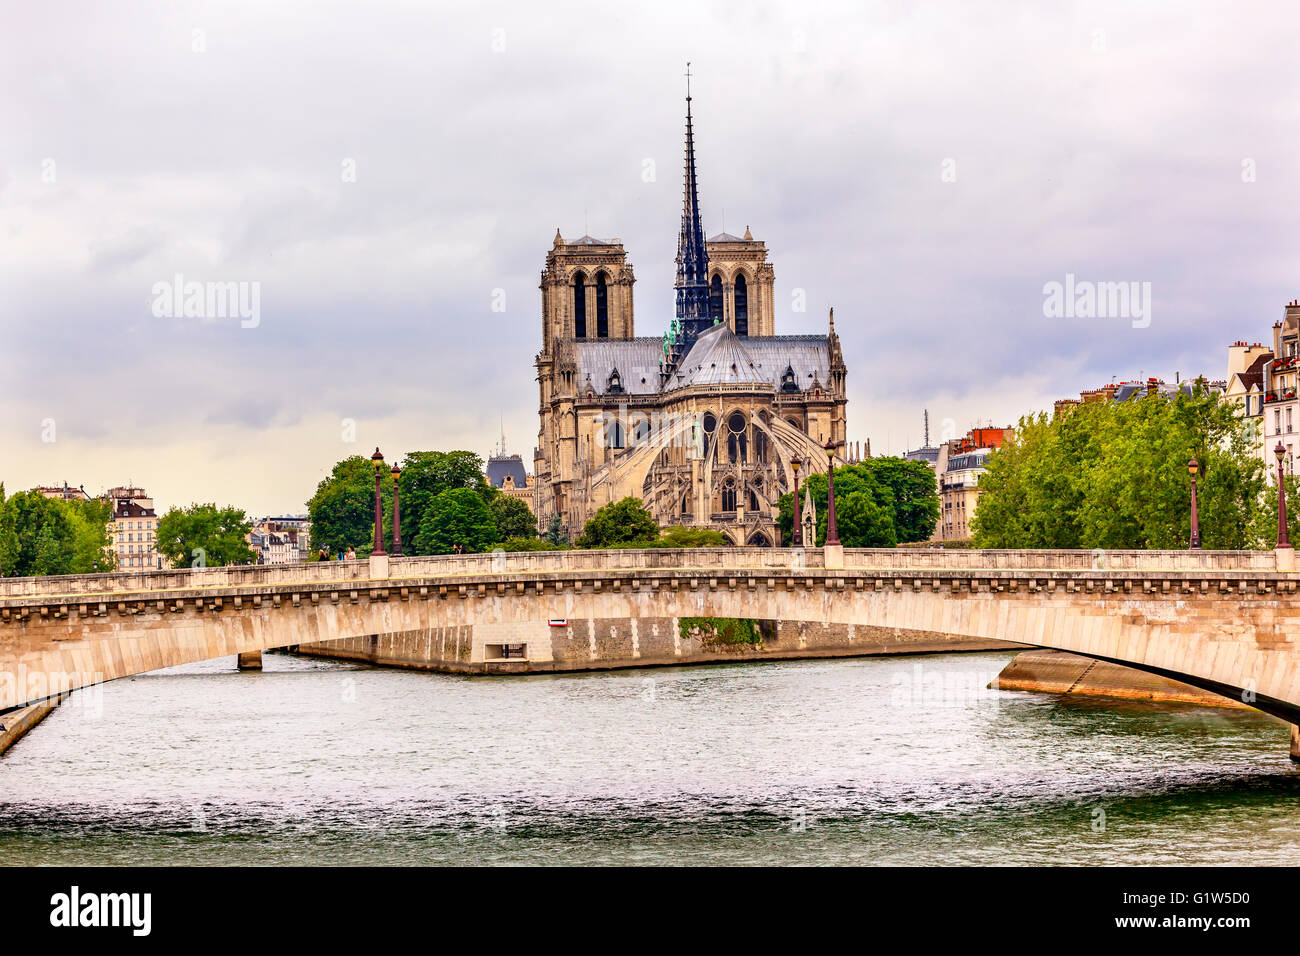 Flying Buttresses Spires Towers Seine River Bridge Overcast Skies Notre Dame Cathedral Paris France. - Stock Image